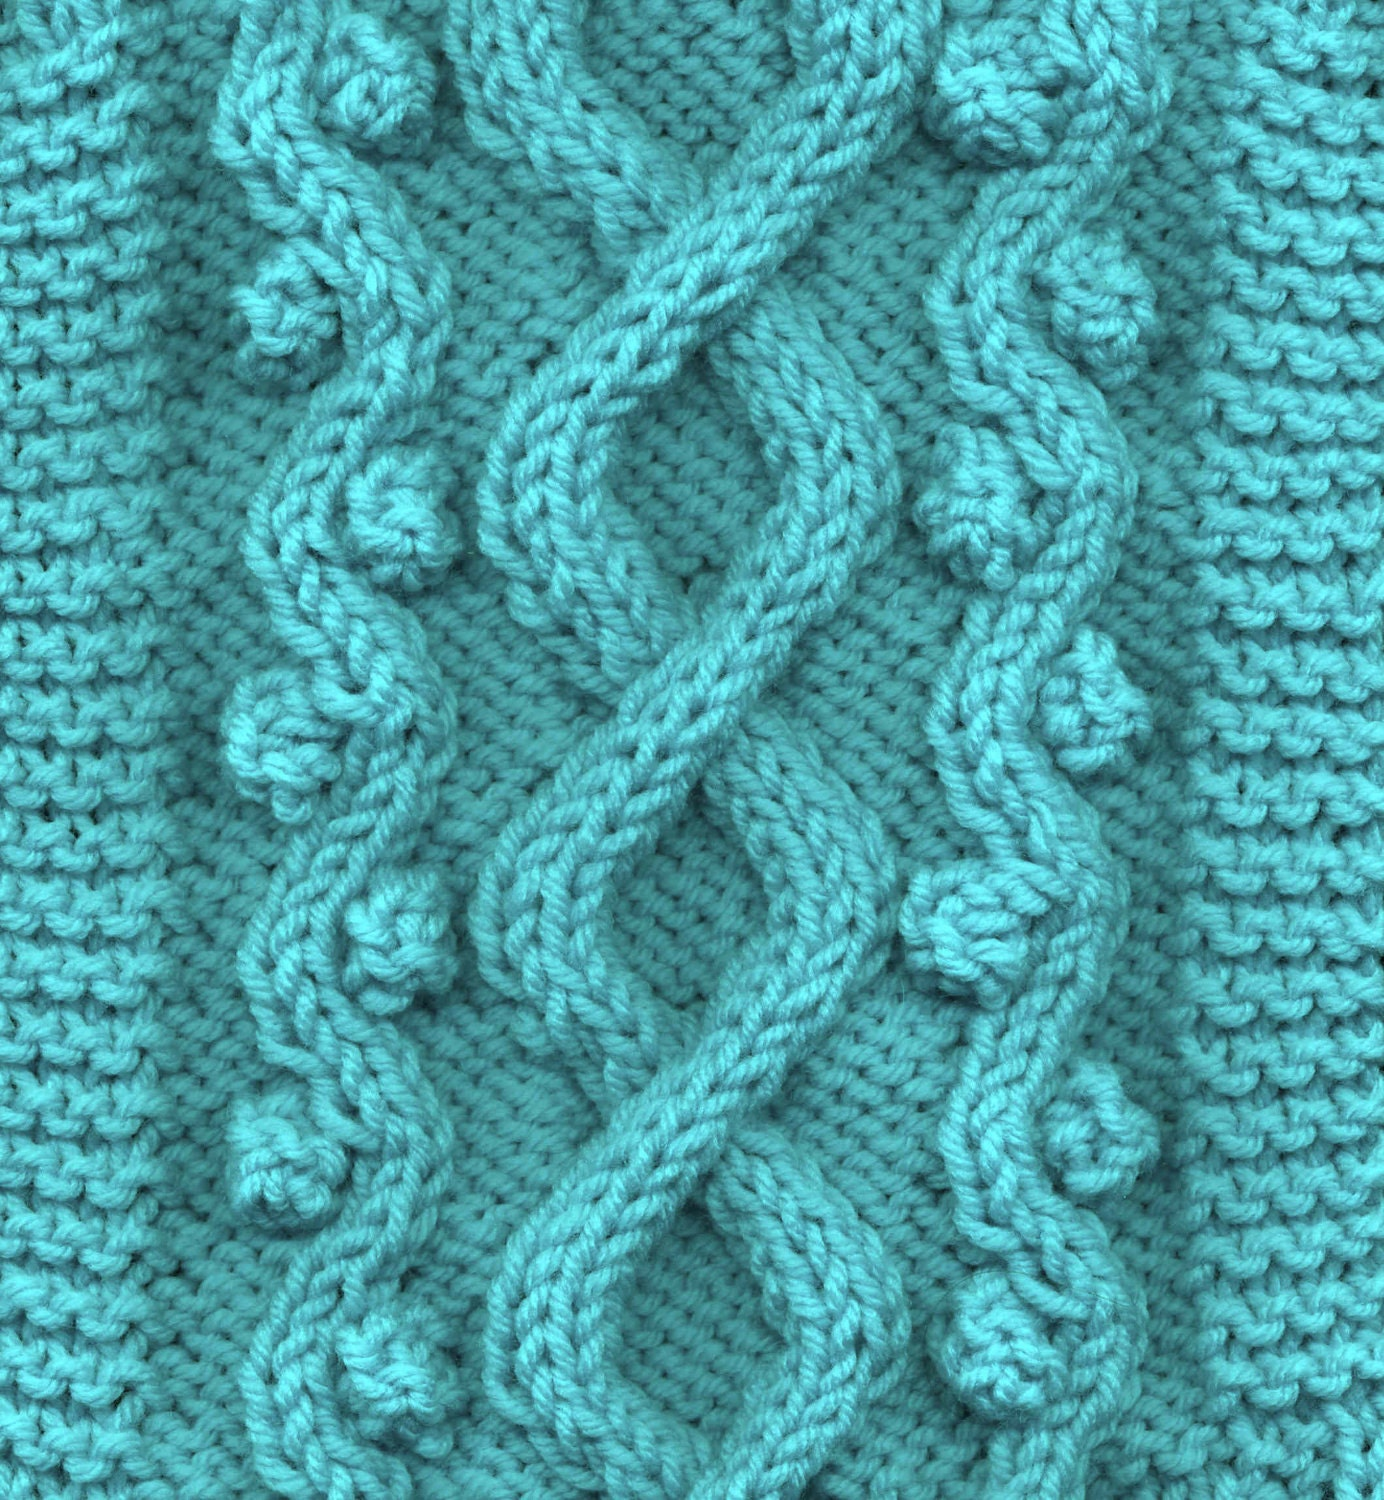 Knitting Cables Patterns : Celtic doggie wandering path cable dog sweater knitting